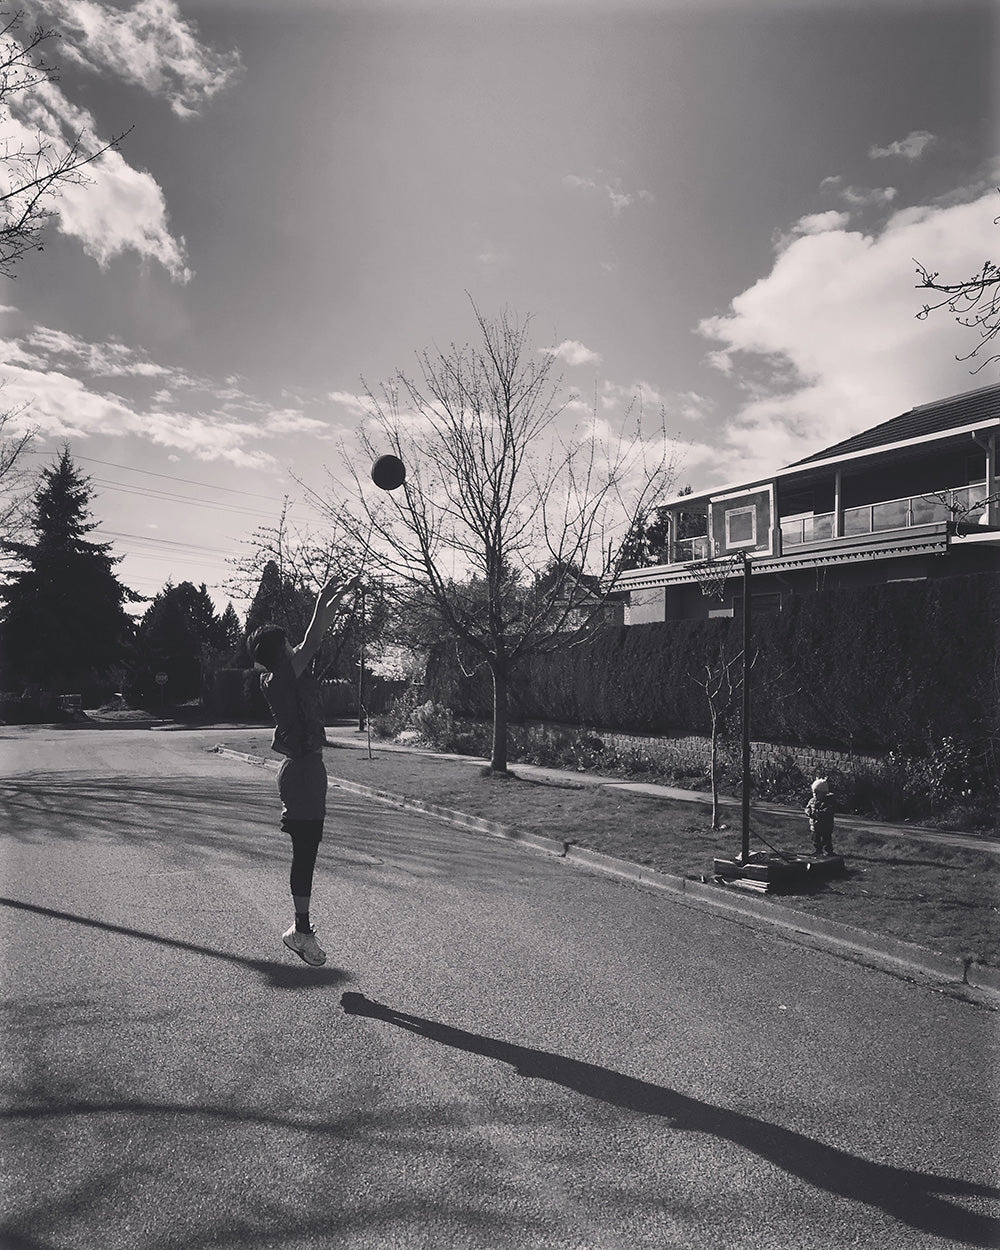 SPITGAN WEBZINE #3 Photo 10. Black and white photo of young man on the street shooting hoops with young toddler watching. Vancouver, BC